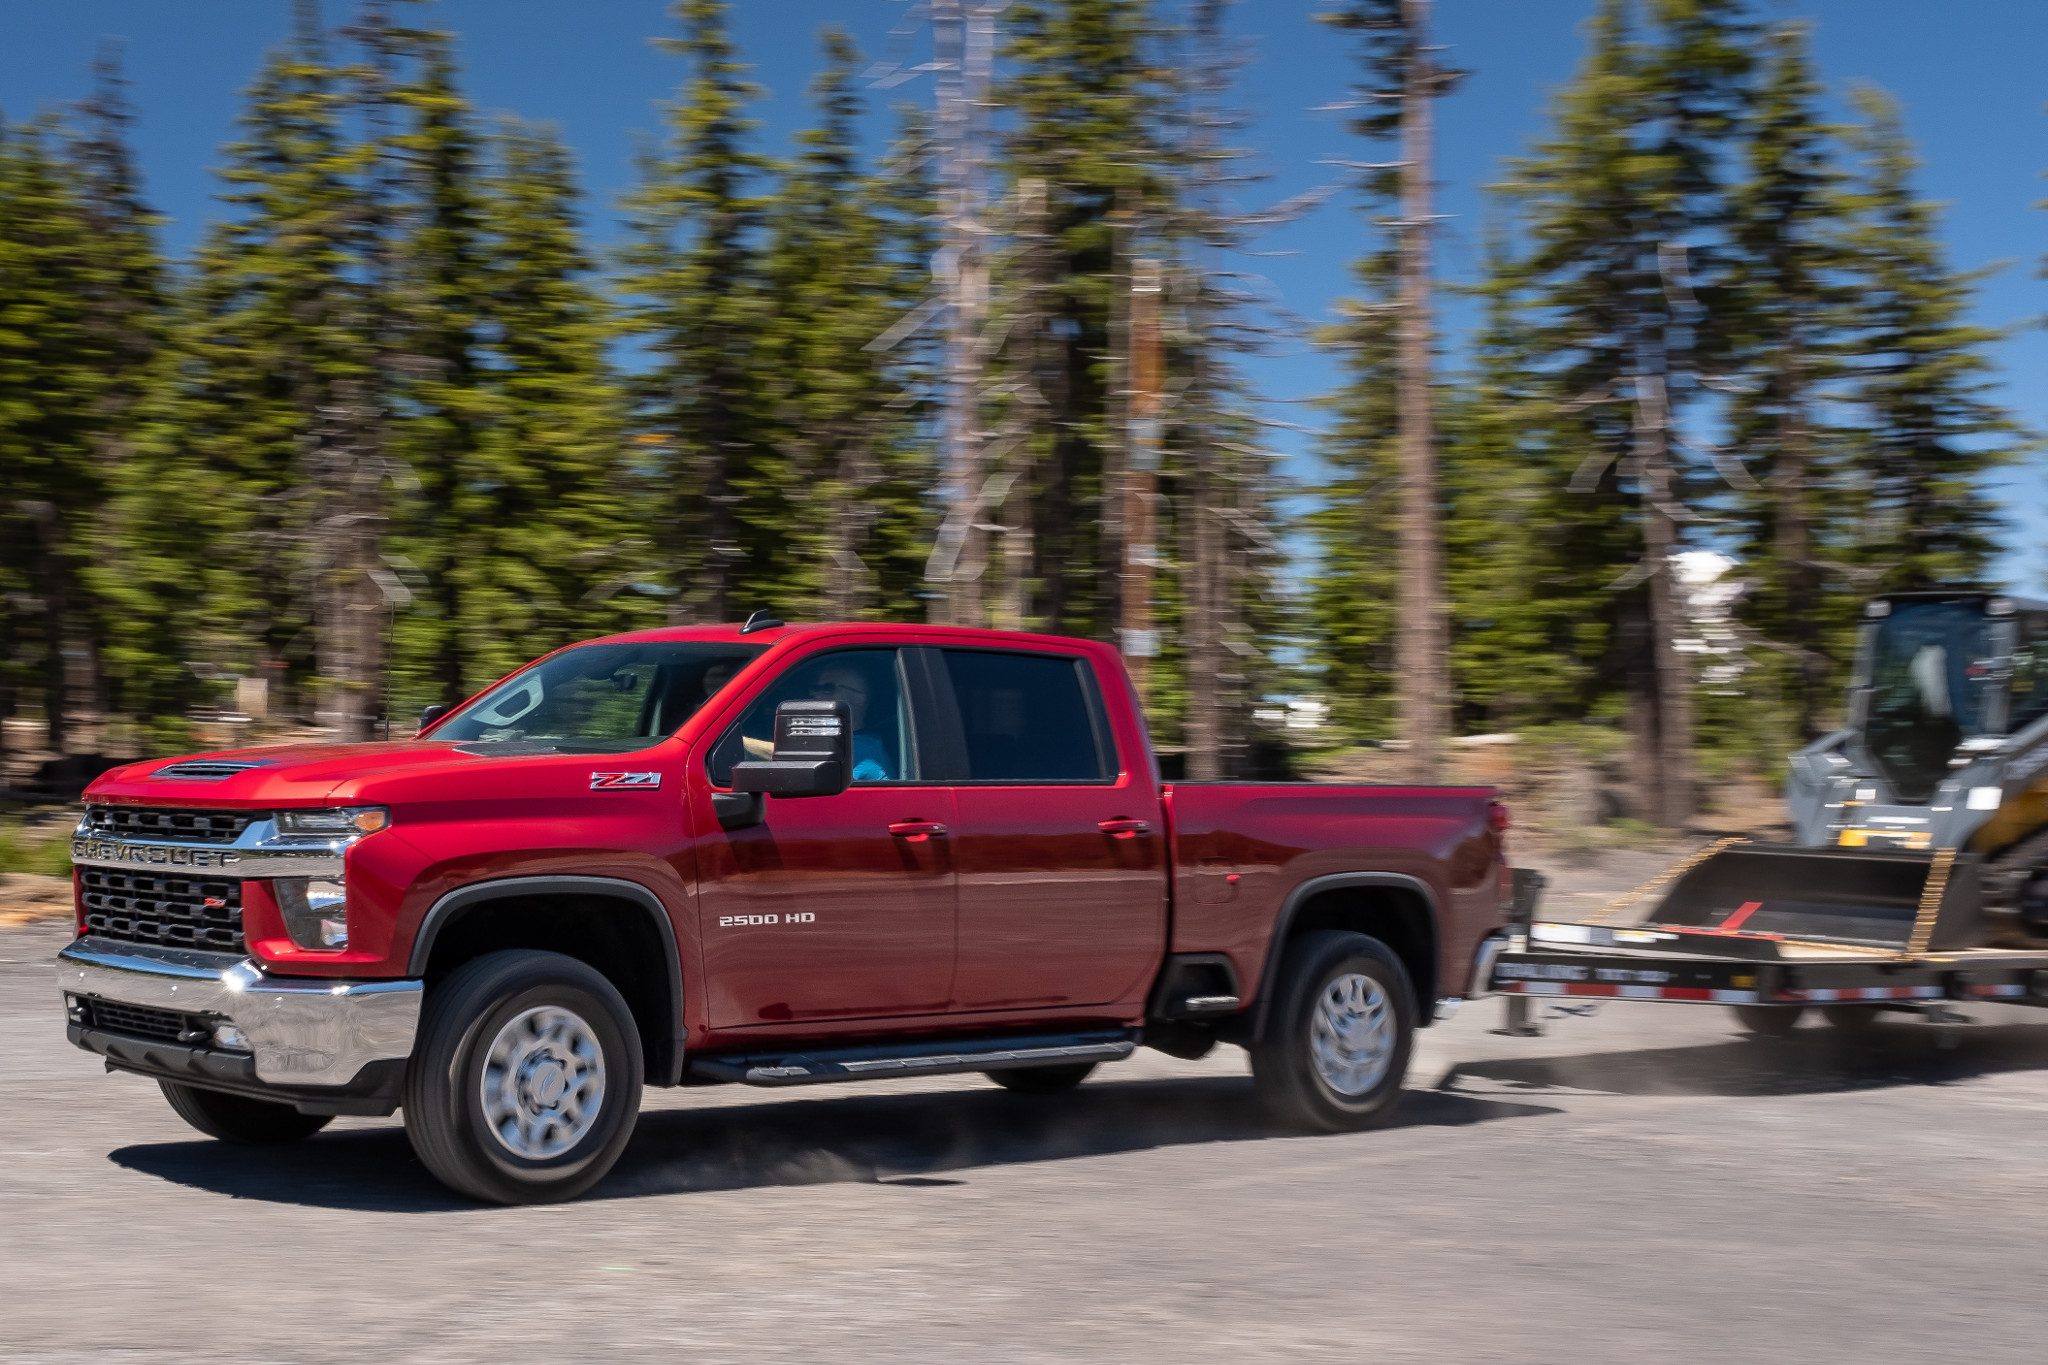 2020 Chevrolet Silverado 2500/3500 Review: Towing Made Easy